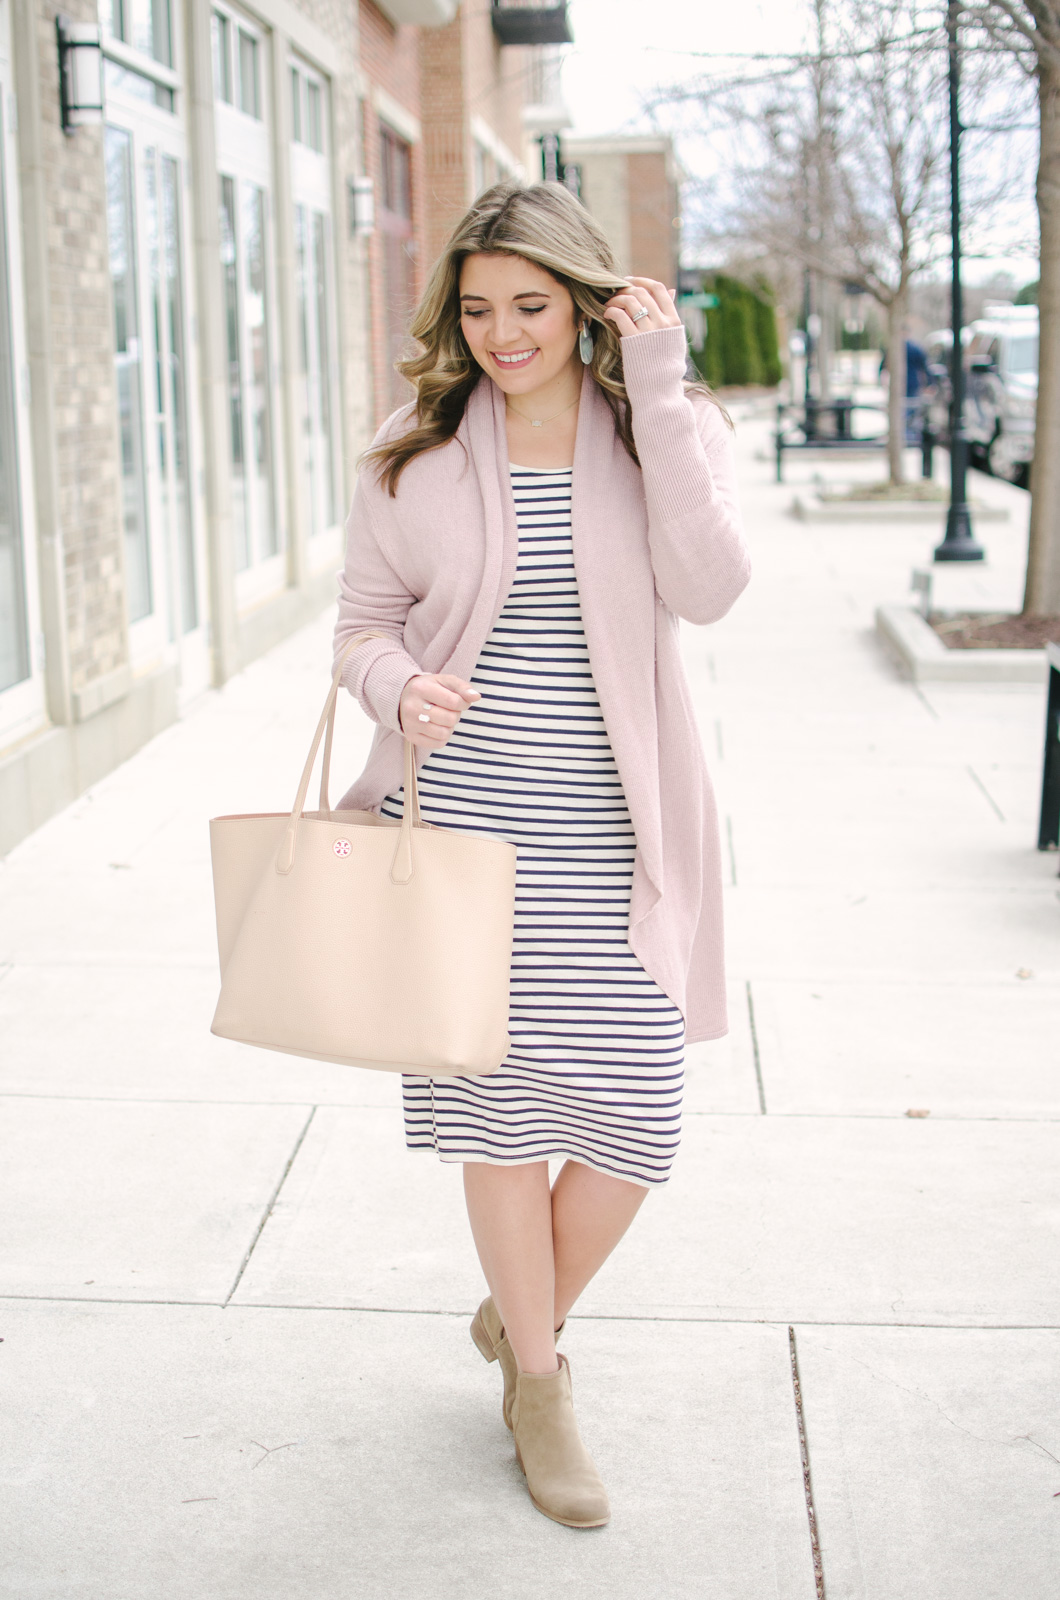 striped dress two ways - two ways to wear a striped dress for Spring | Shop this look and see the other striped dress outfit at bylaurenm.com!